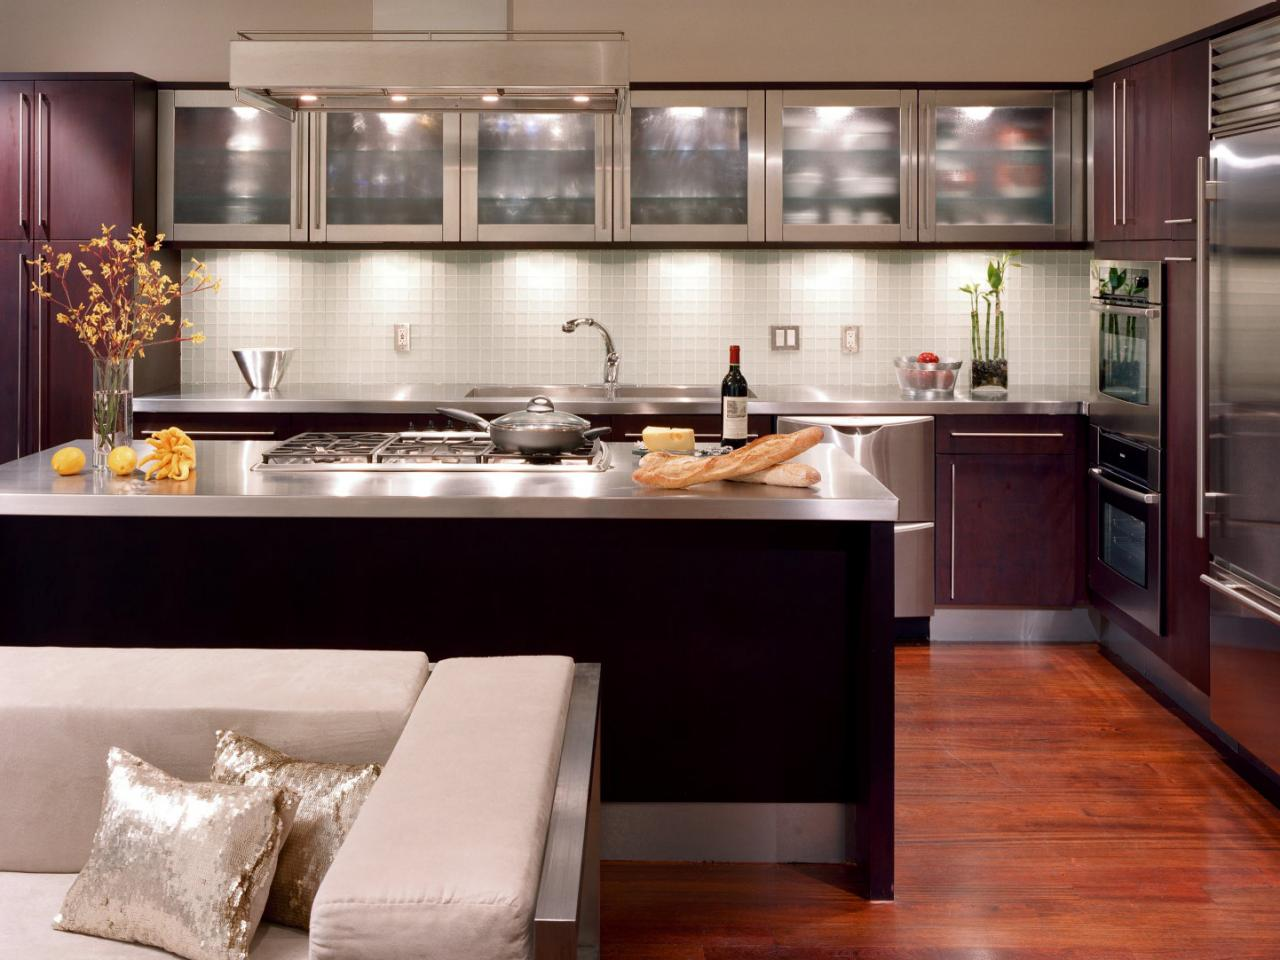 Pics Of Modern Kitchens small modern kitchen design ideas: hgtv pictures & tips | hgtv